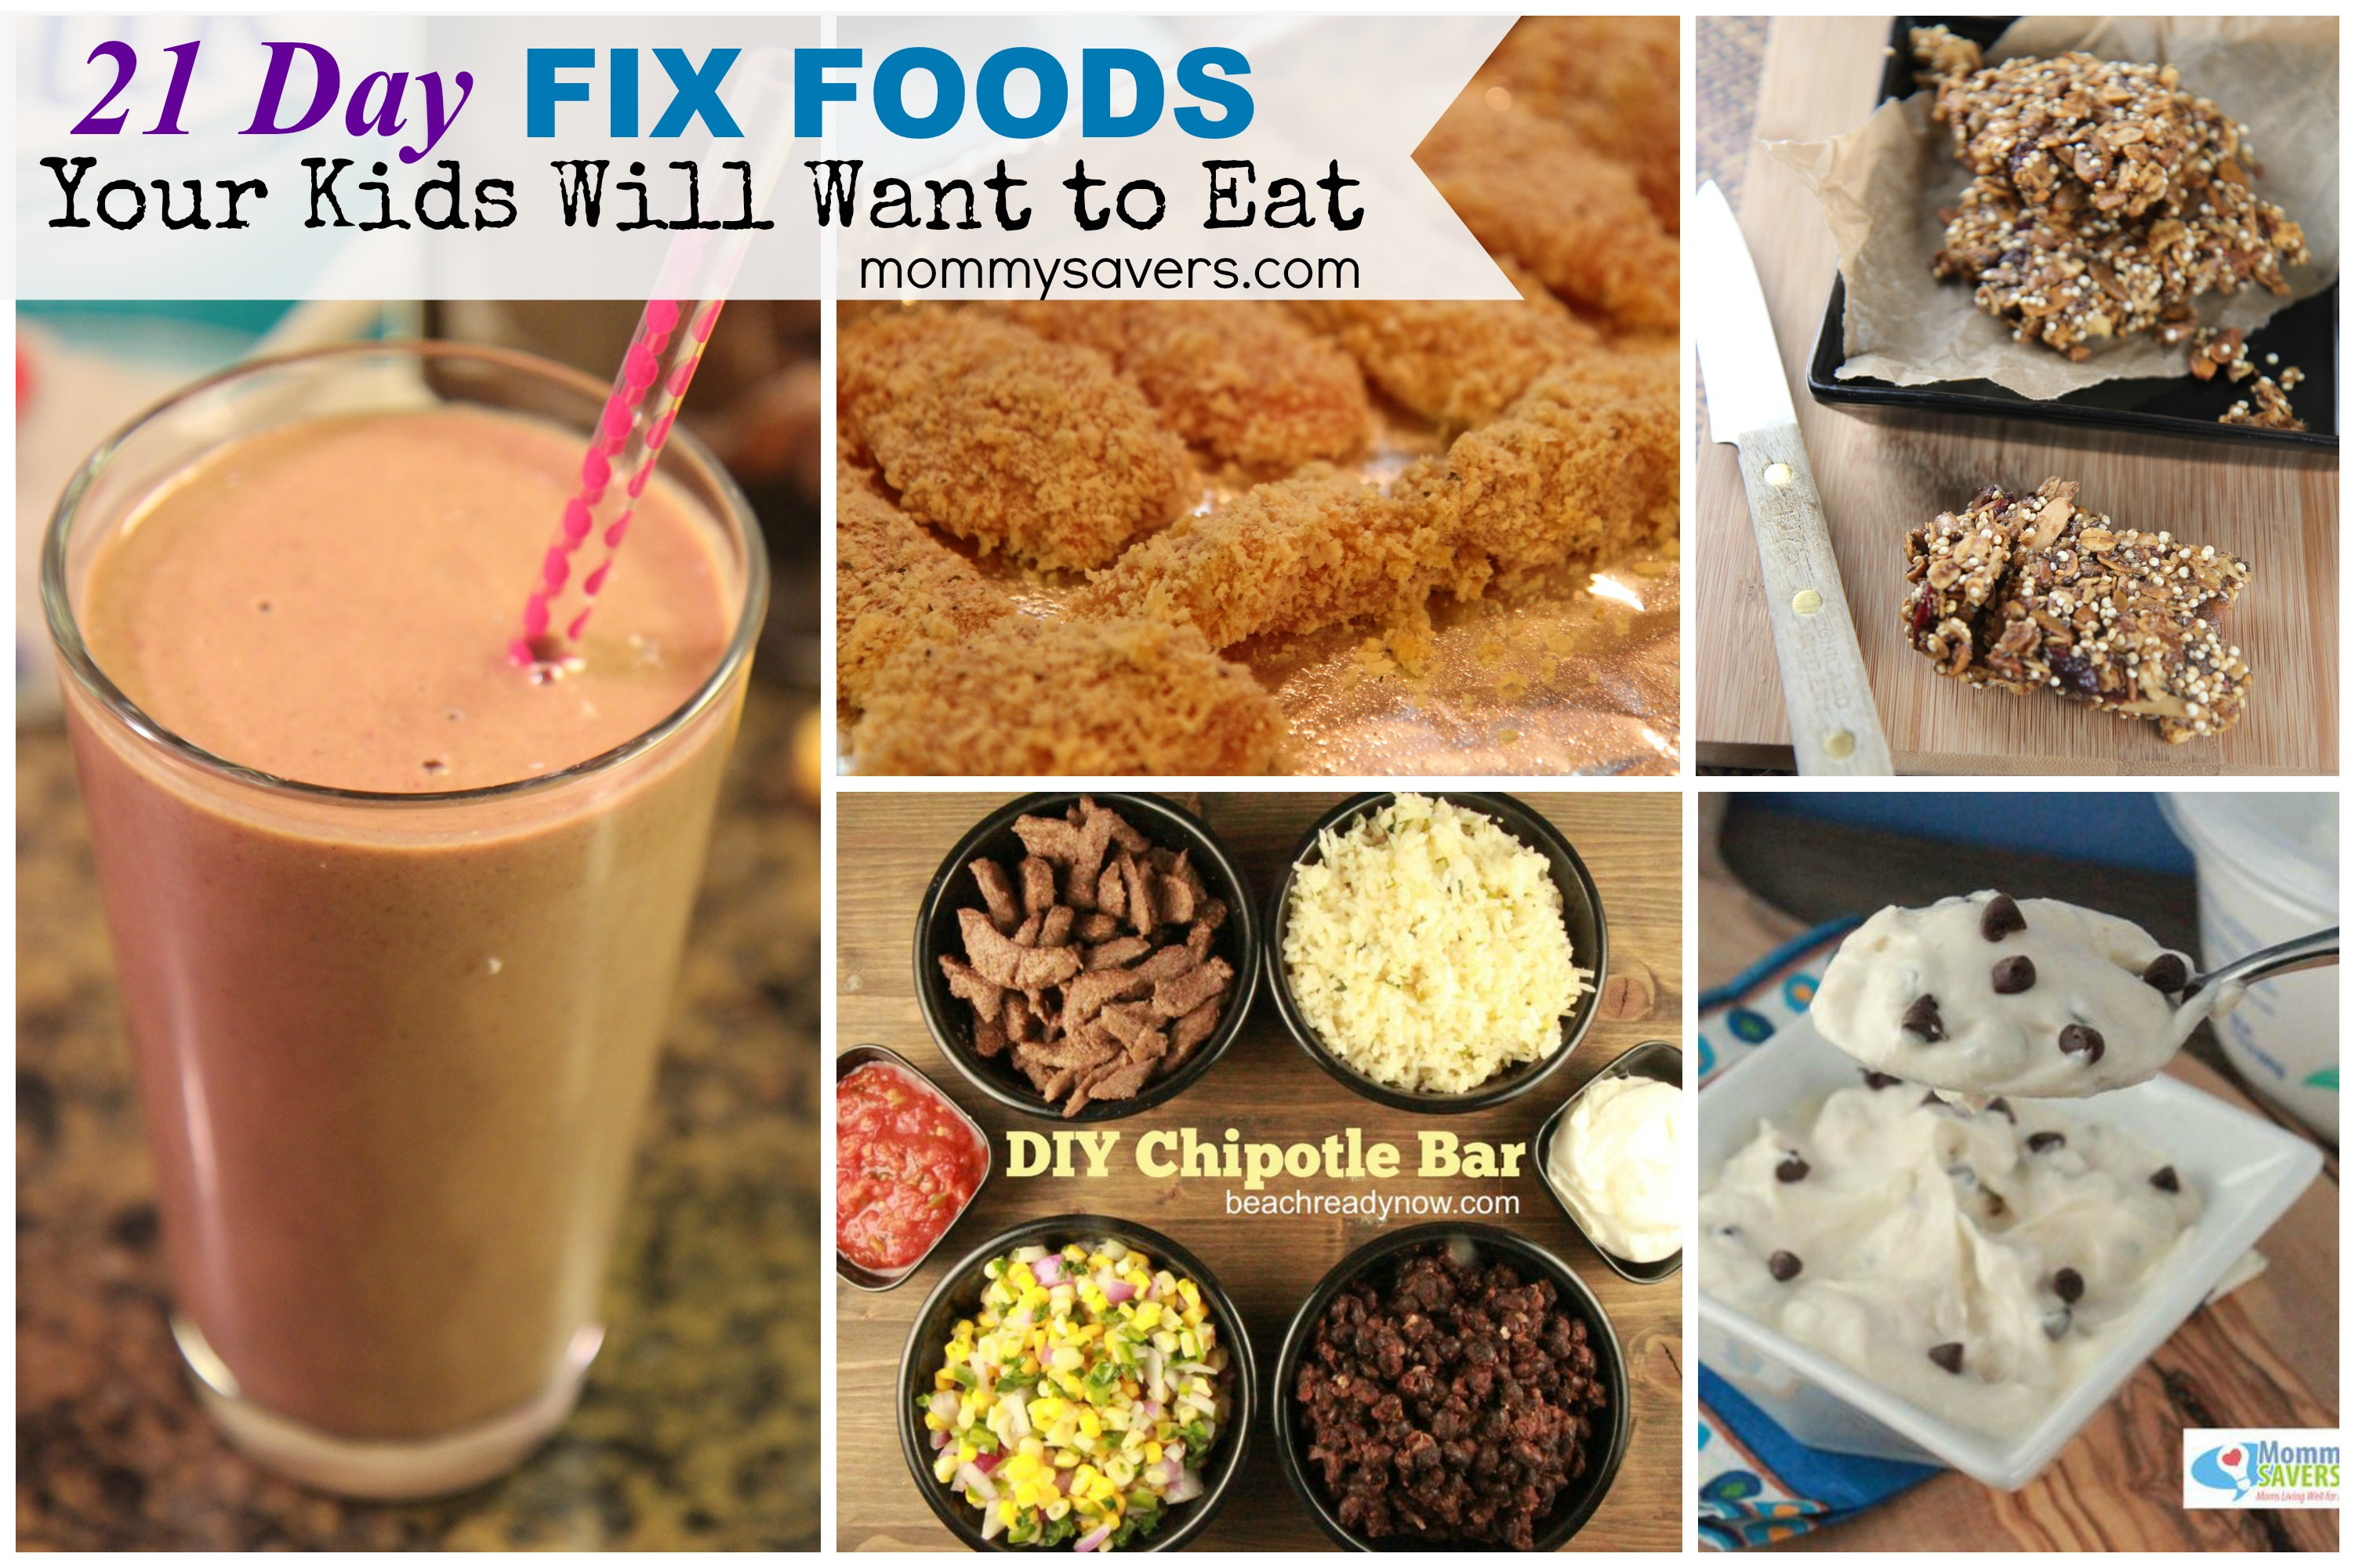 21 day fix foods your kids will want to eat mommysavers mommysavers